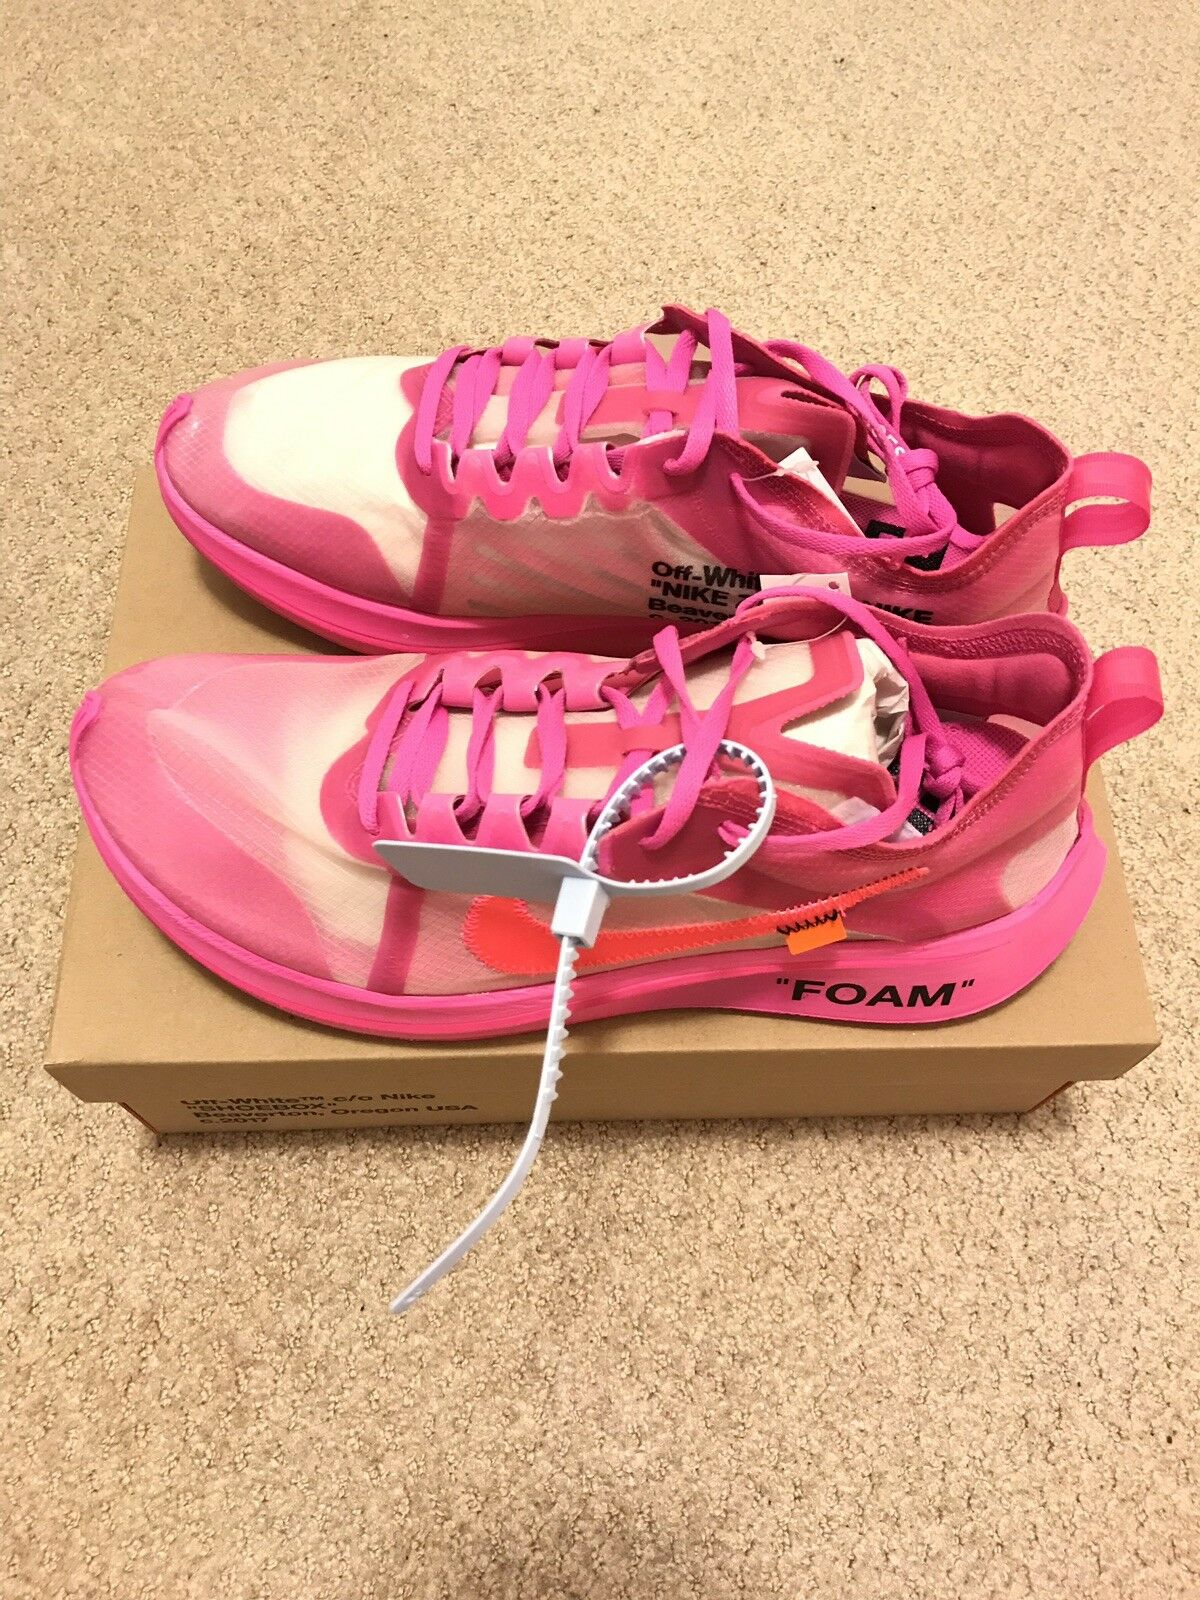 Nike The Ten Off White X Nike Zoom Fly Tulip Pink Size 11.5